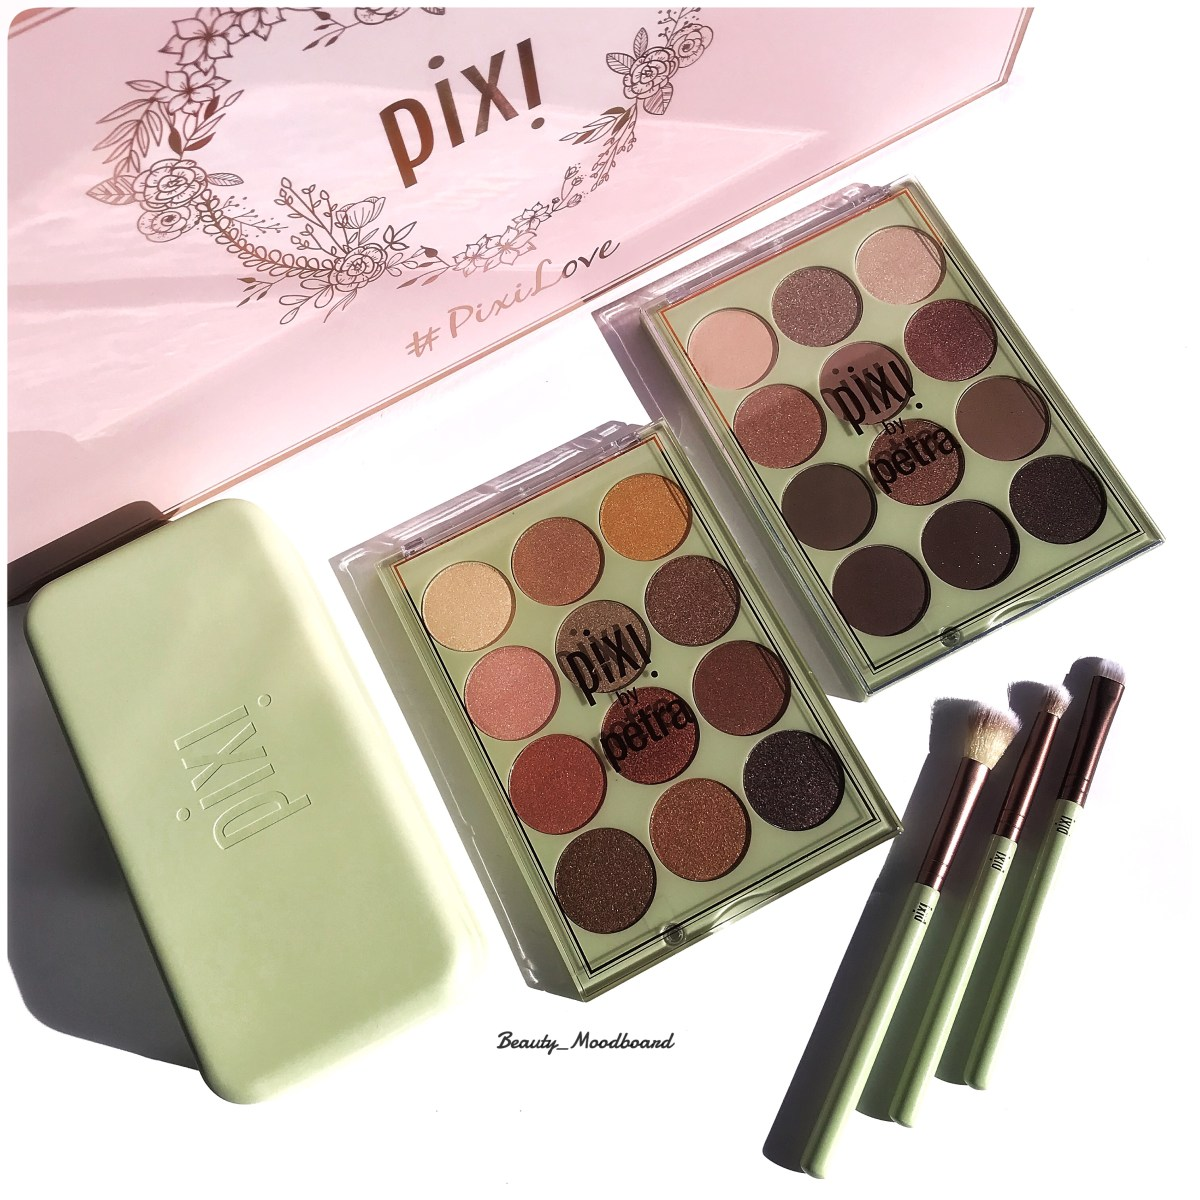 Pixi Beauty Eye Reflections Shadow Palette #getthepixiglow ;)